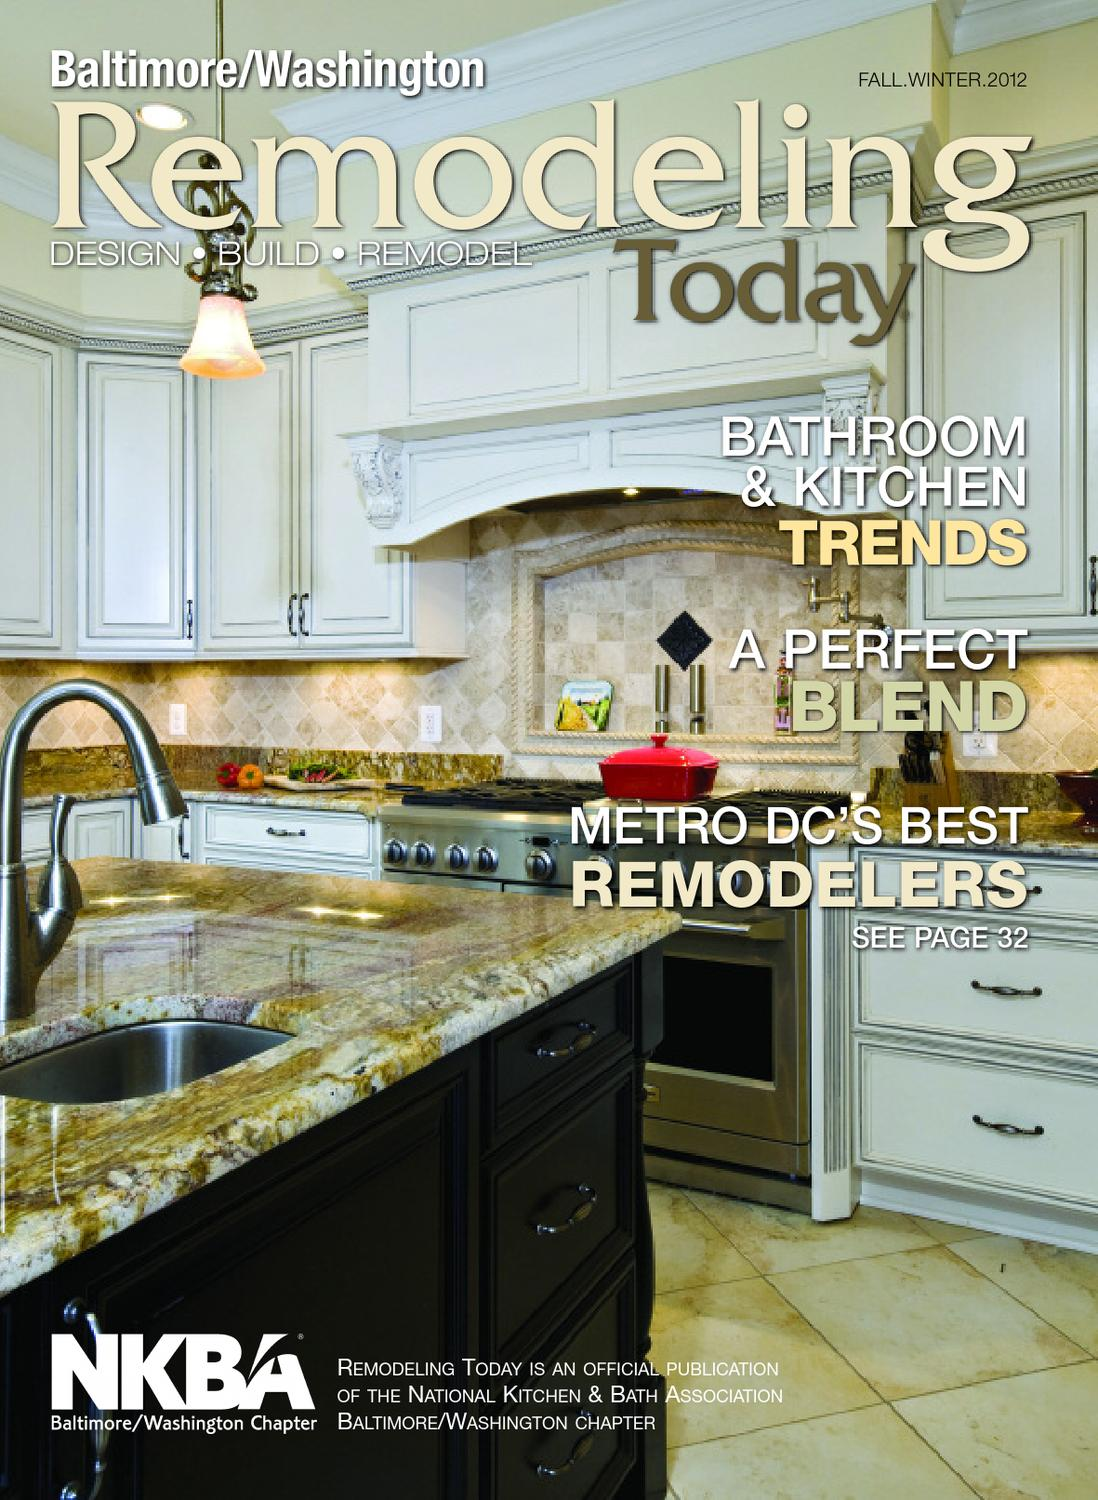 rtfw12dc baltimore kitchen remodeling Remodeling Today Baltimore Washington Fall Winter by Remodelinform issuu